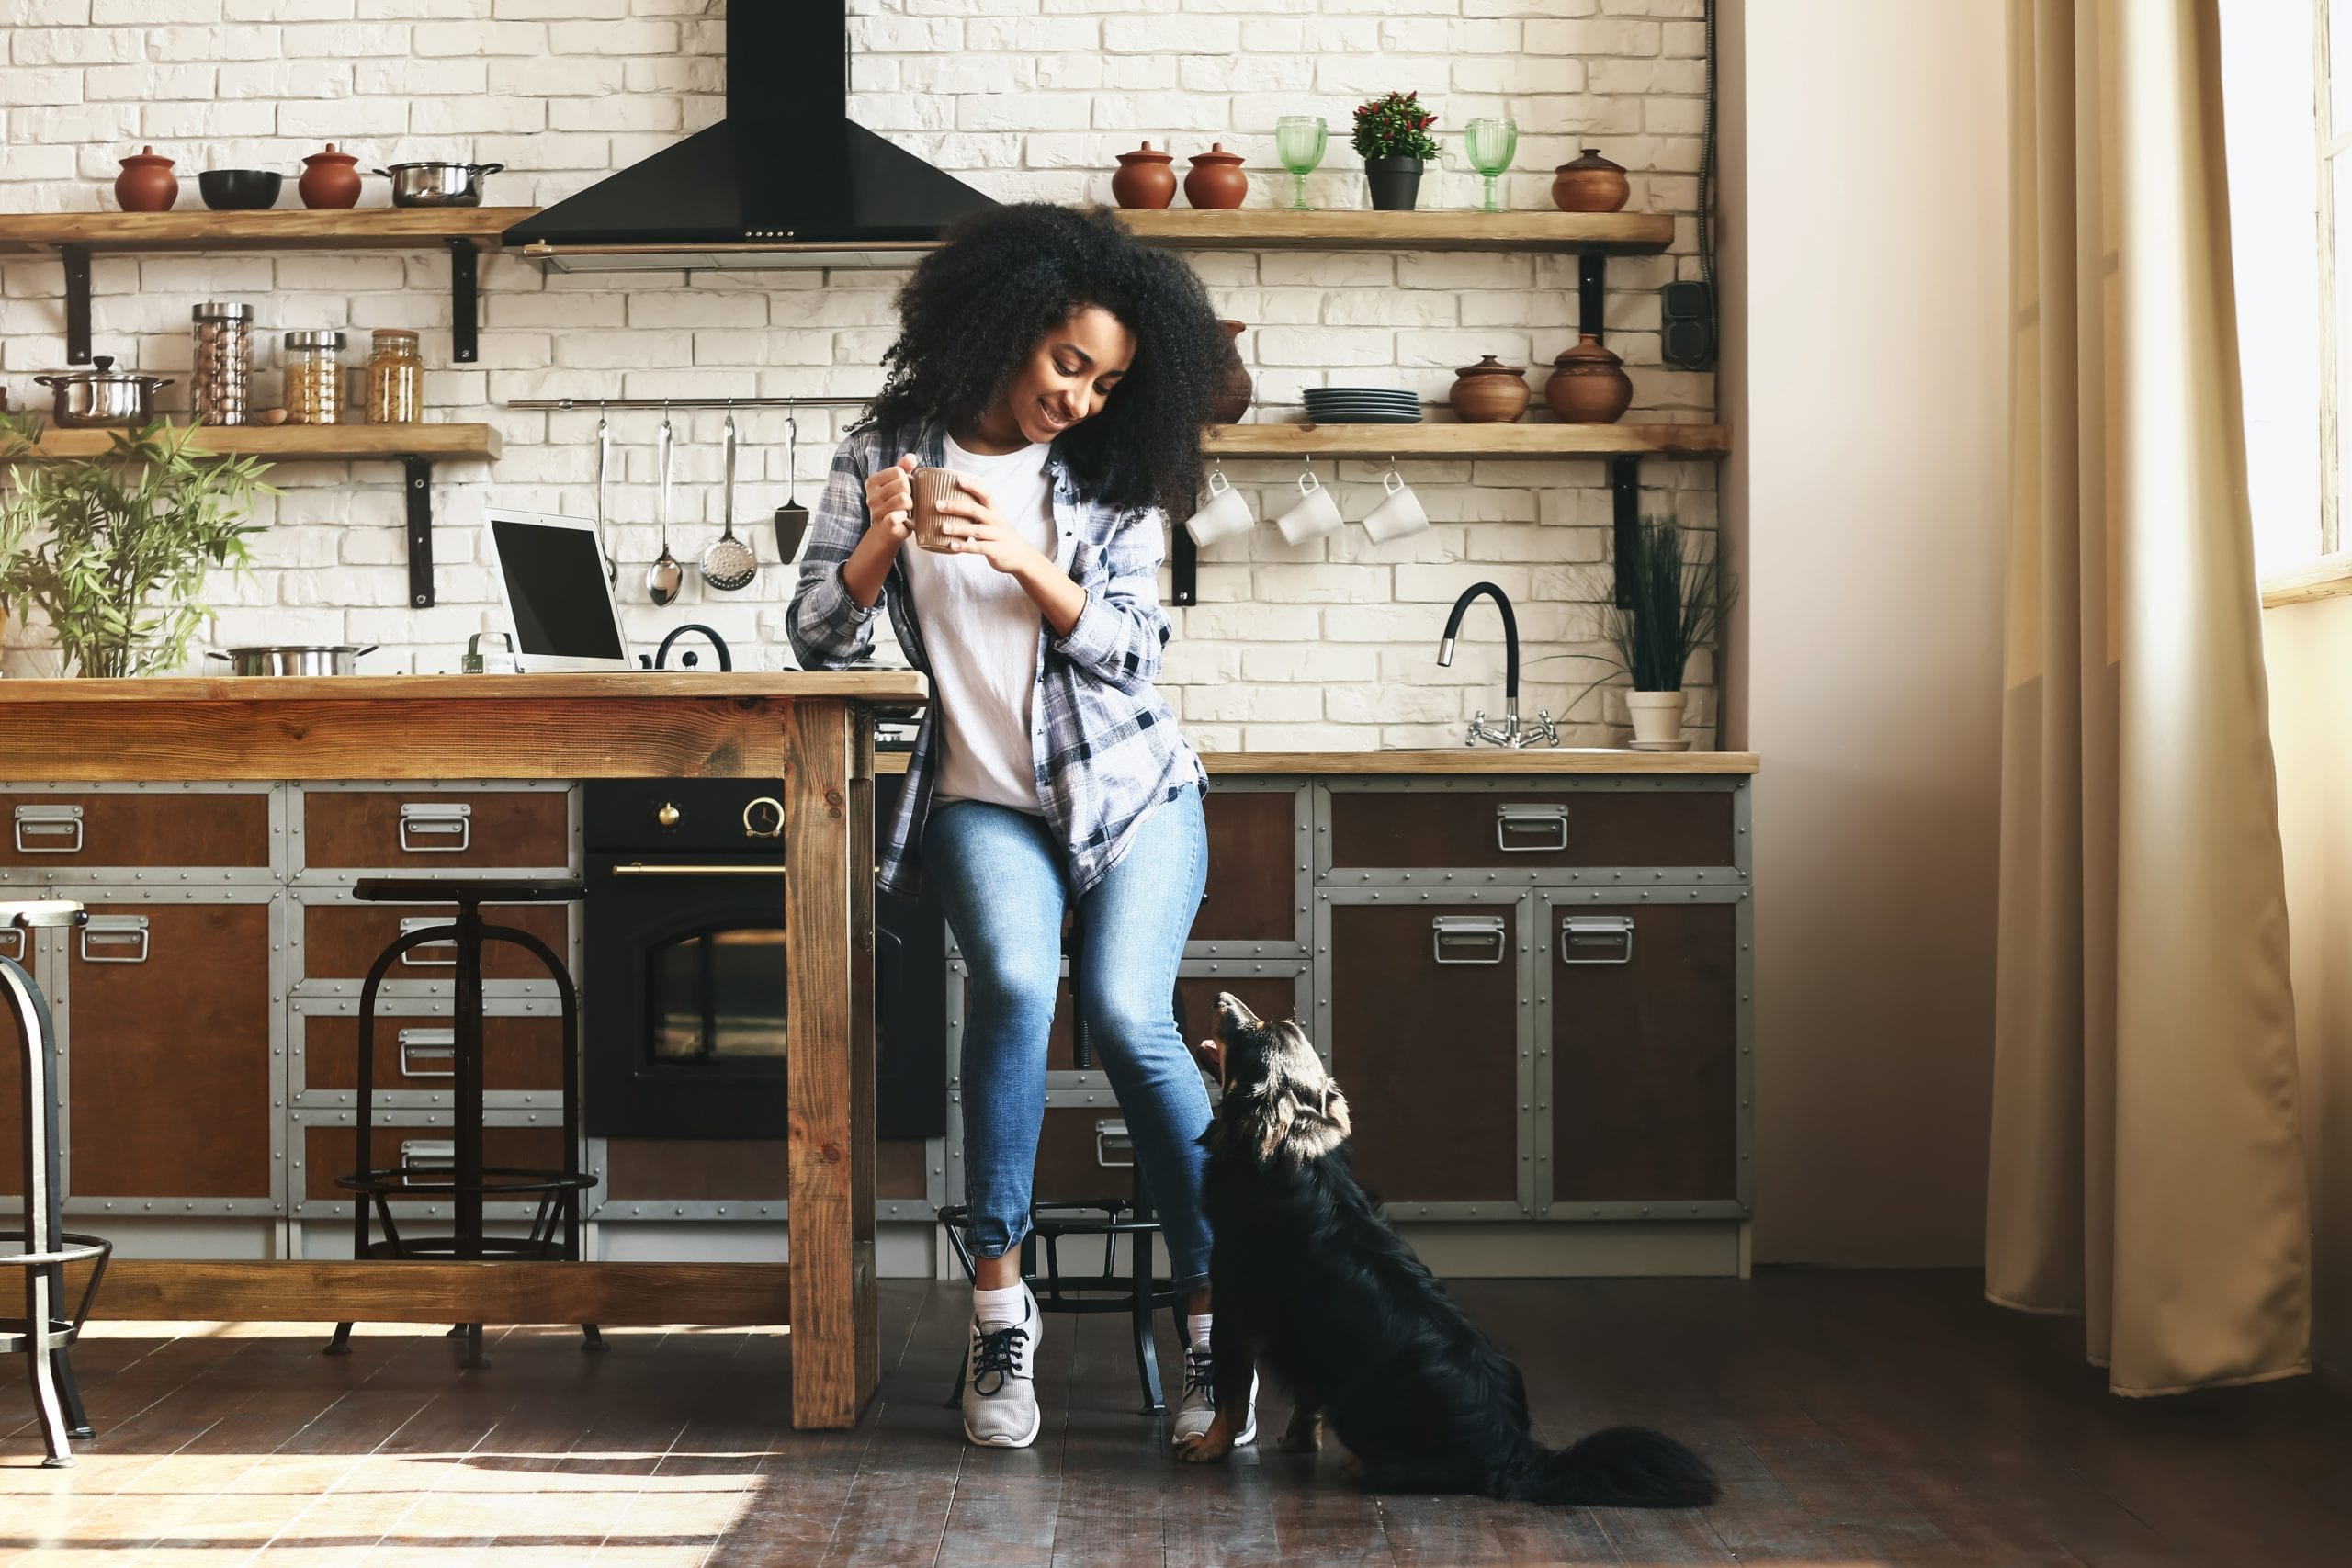 African-American woman with dark hair worn in an afro sits on a tall stool at a wooden kitchen island hold a white coffee mug, looking down at her black dog, that is looking up to her, in the back ground the kitchen has a white tile wall with open shelves, a black oven and stove vent, and brown lower cabinets with metal accents.